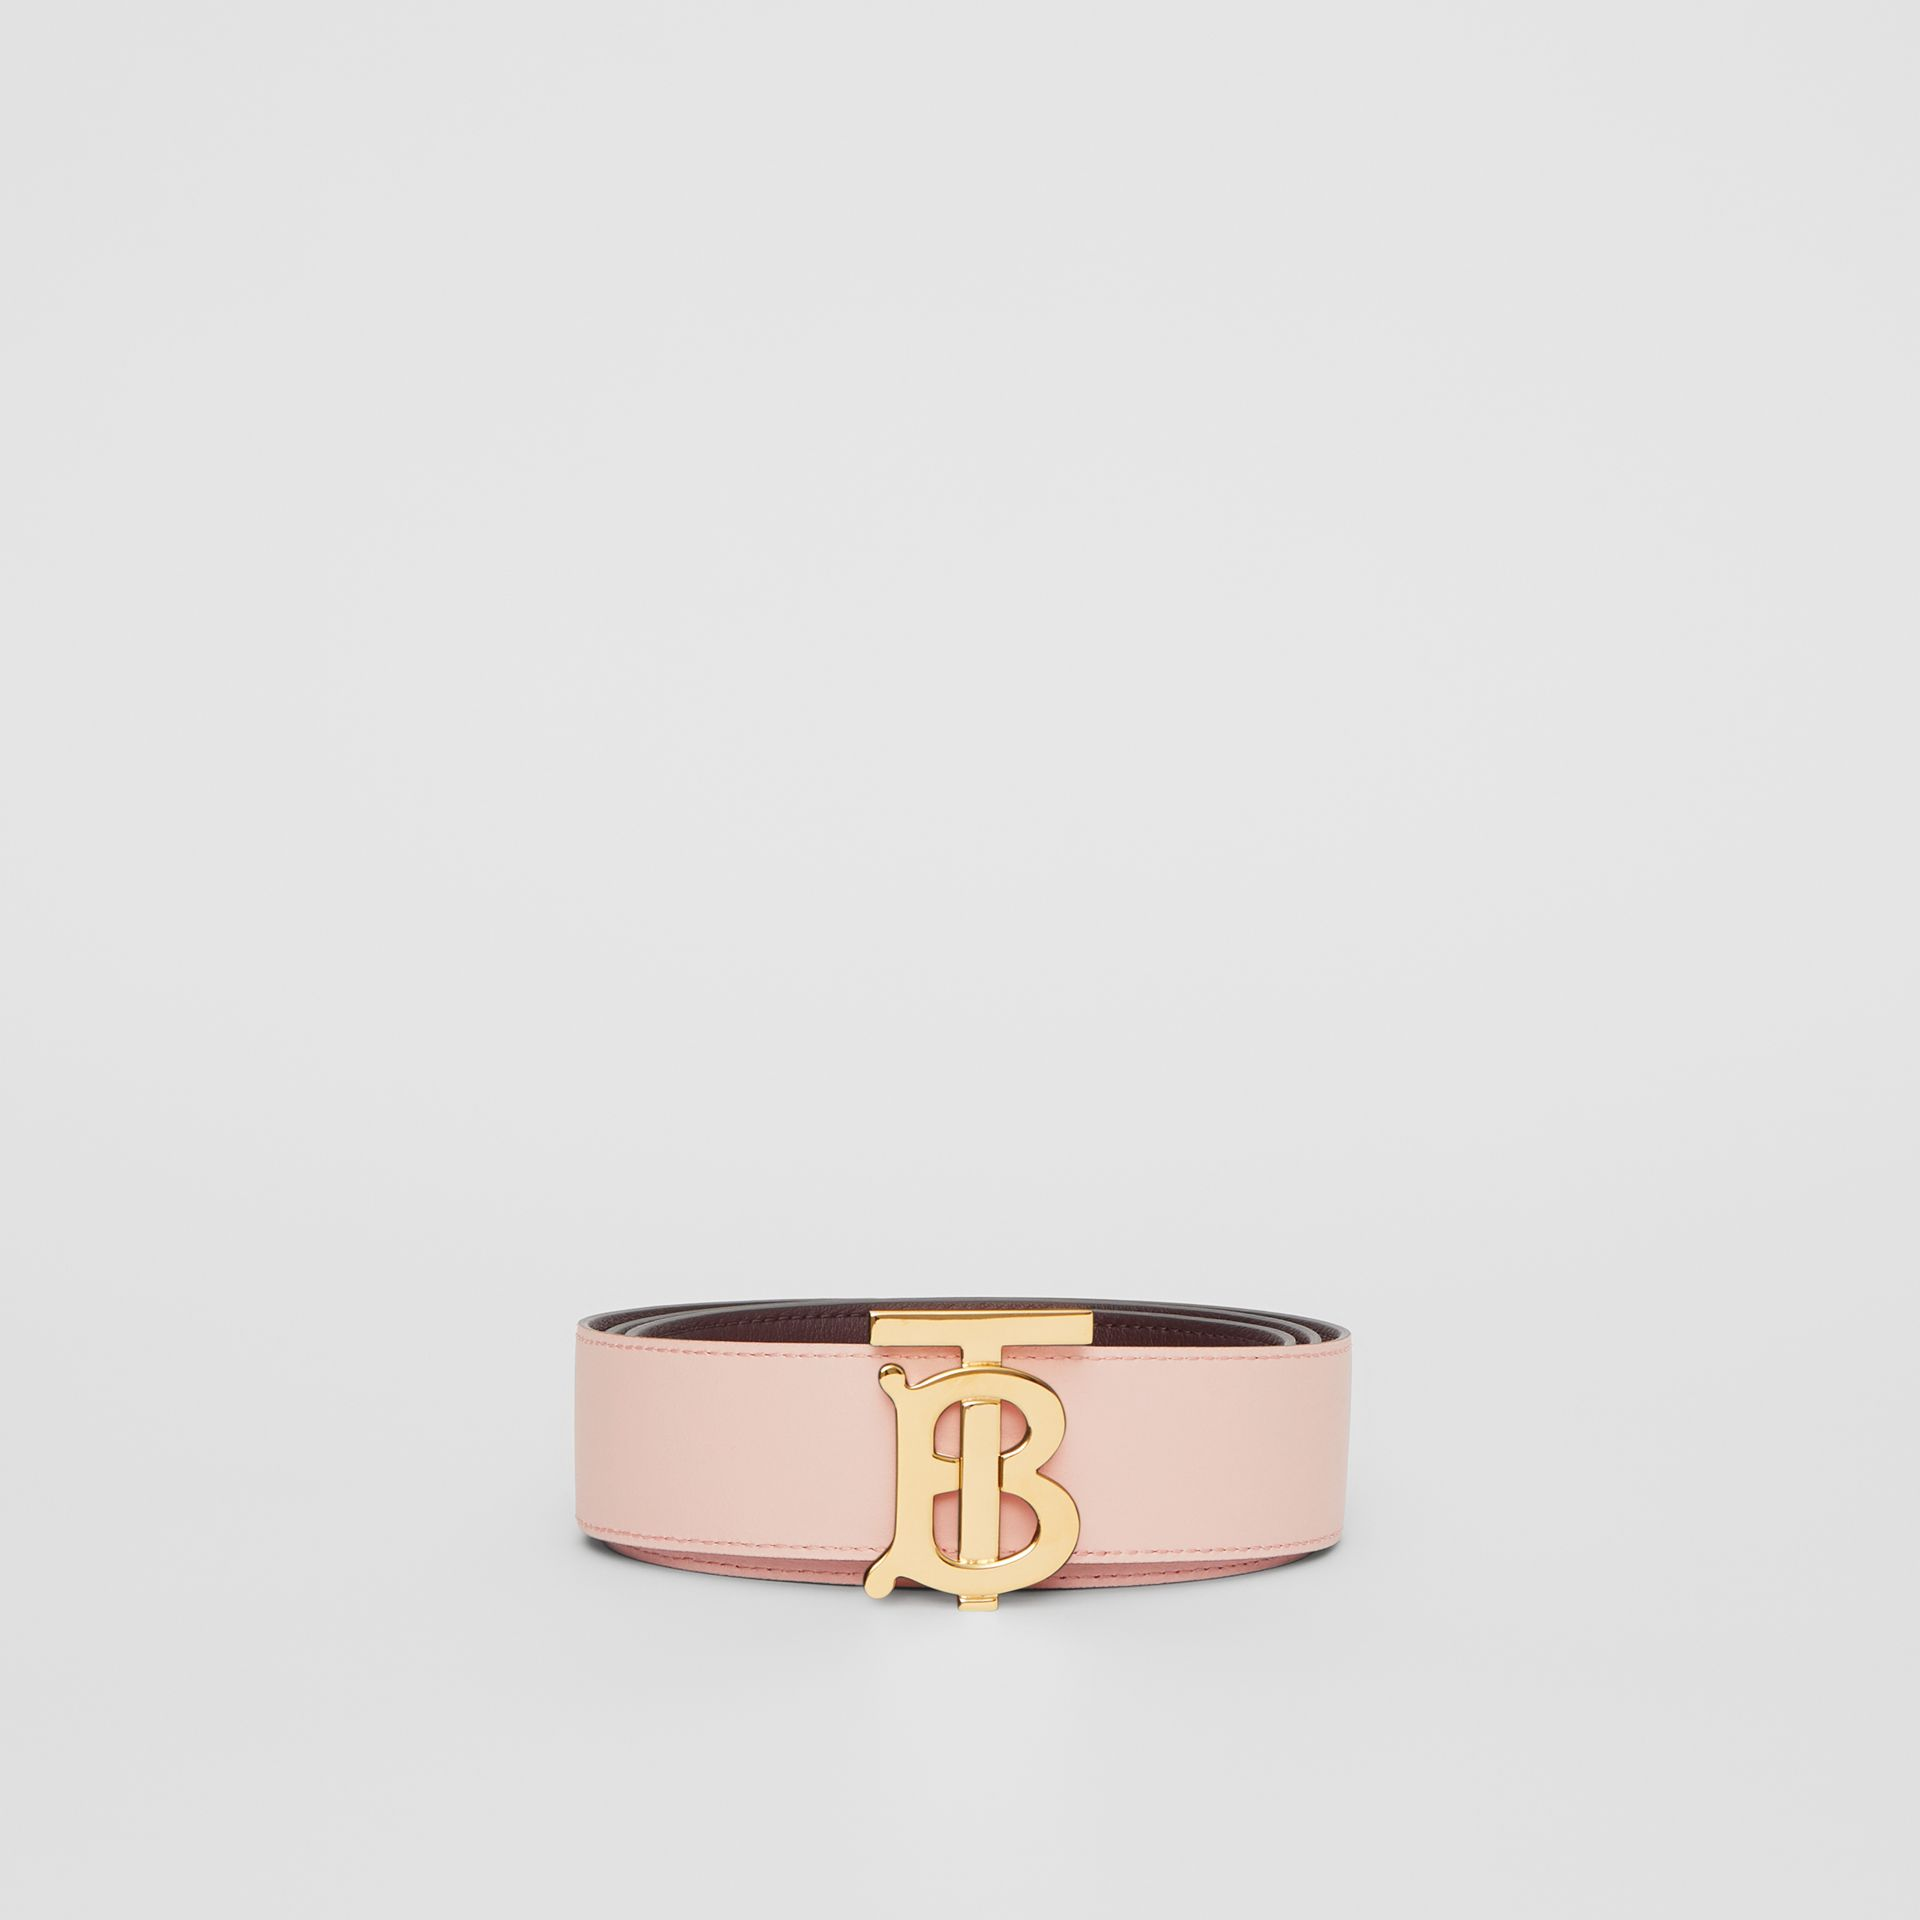 Ceinture en cuir réversible Monogram (Oxblood/beige Rose) - Femme | Burberry Canada - photo de la galerie 7